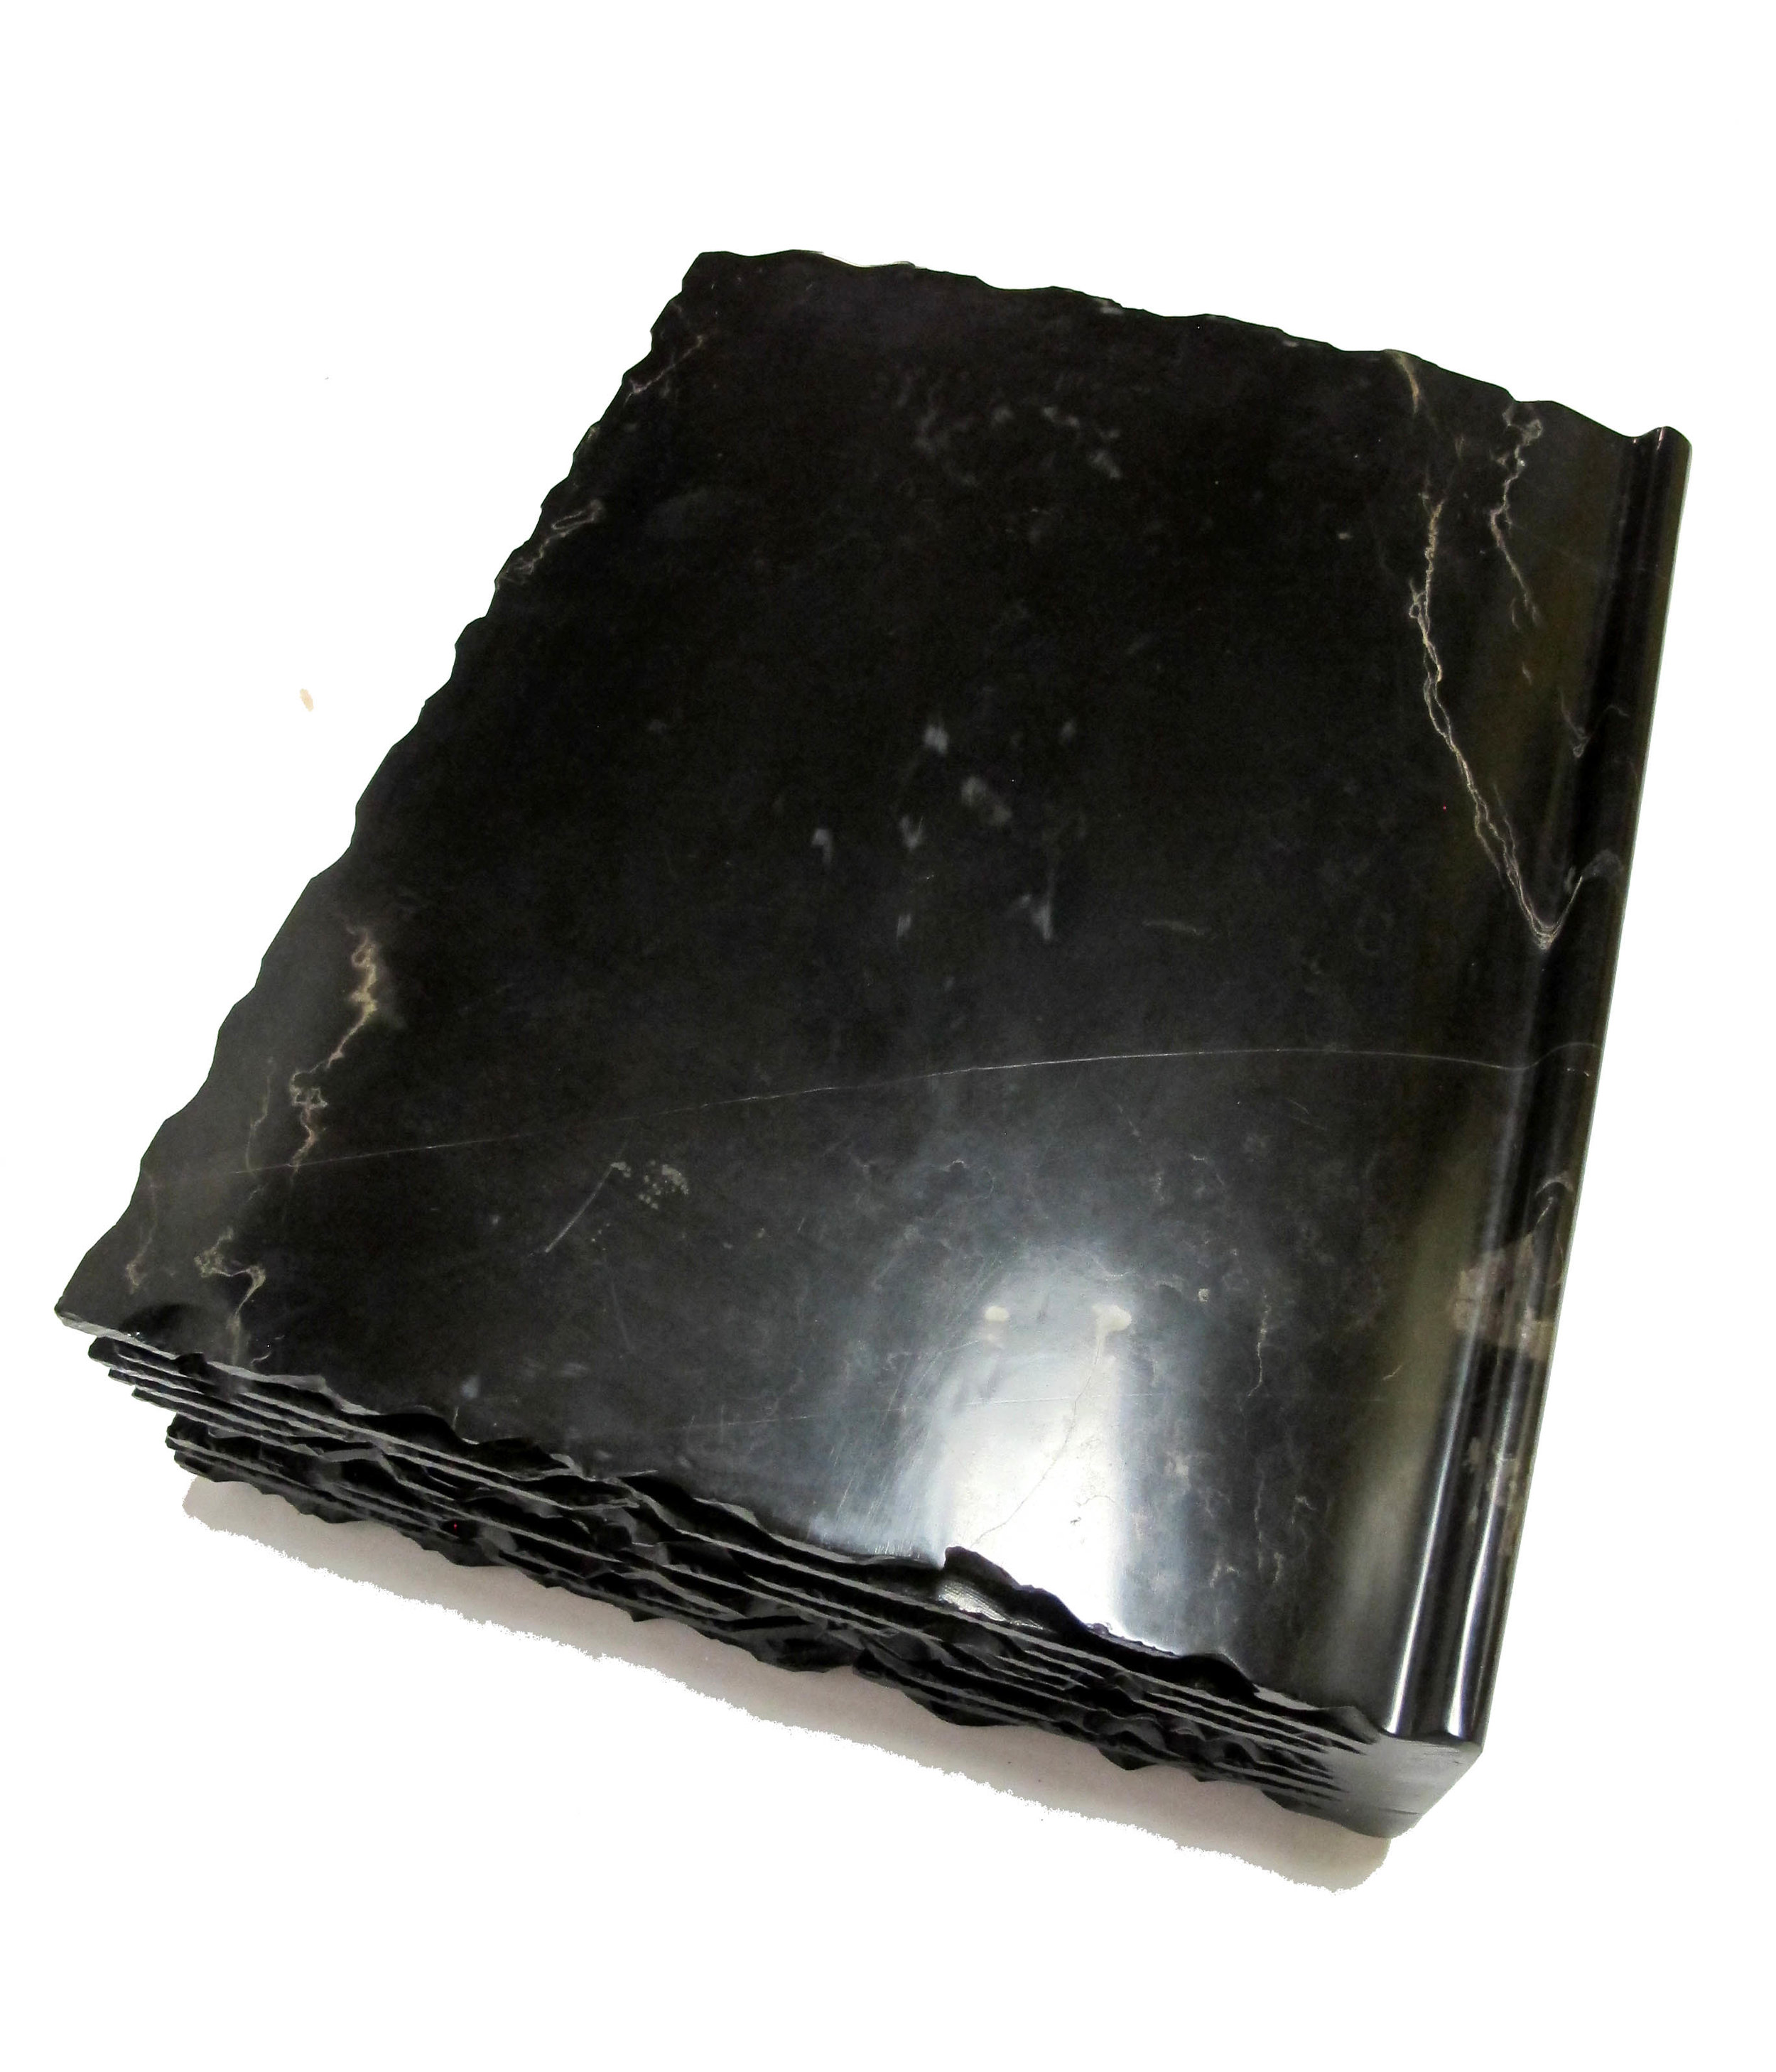 KL_Large Book_black marble 4.jpg